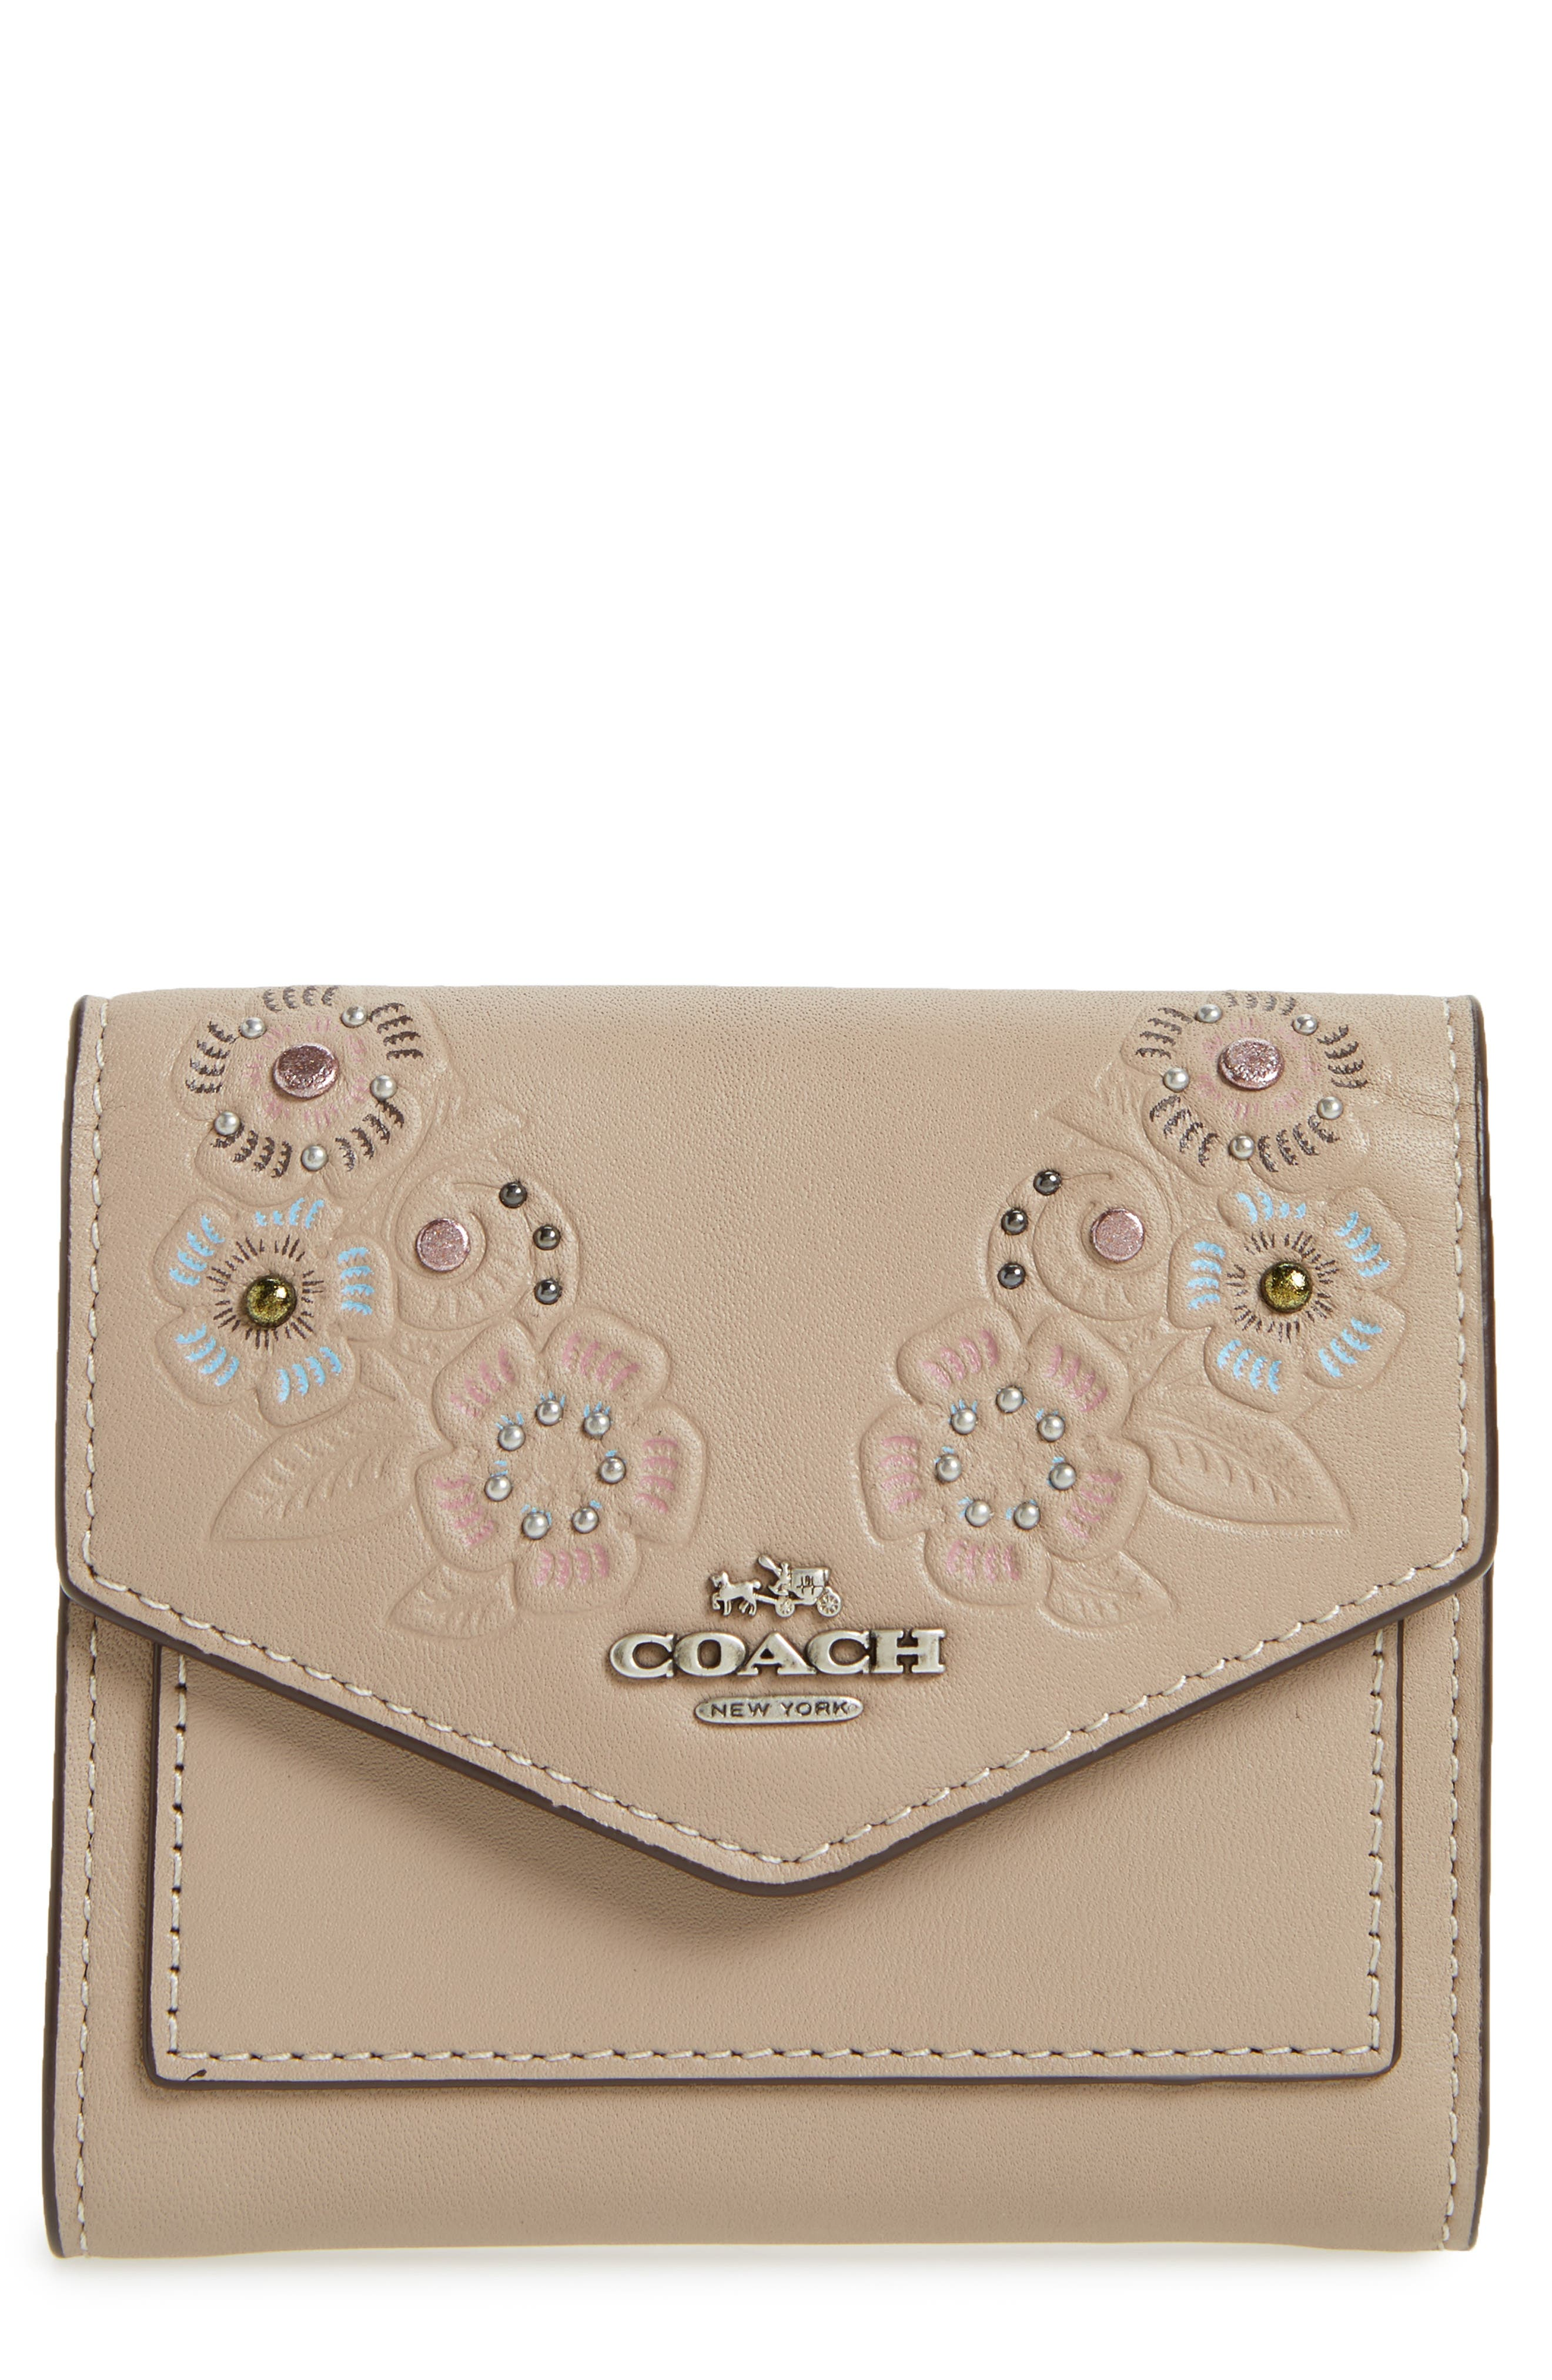 COACH Small Tea Rose Calfskin Leather Trifold Wallet